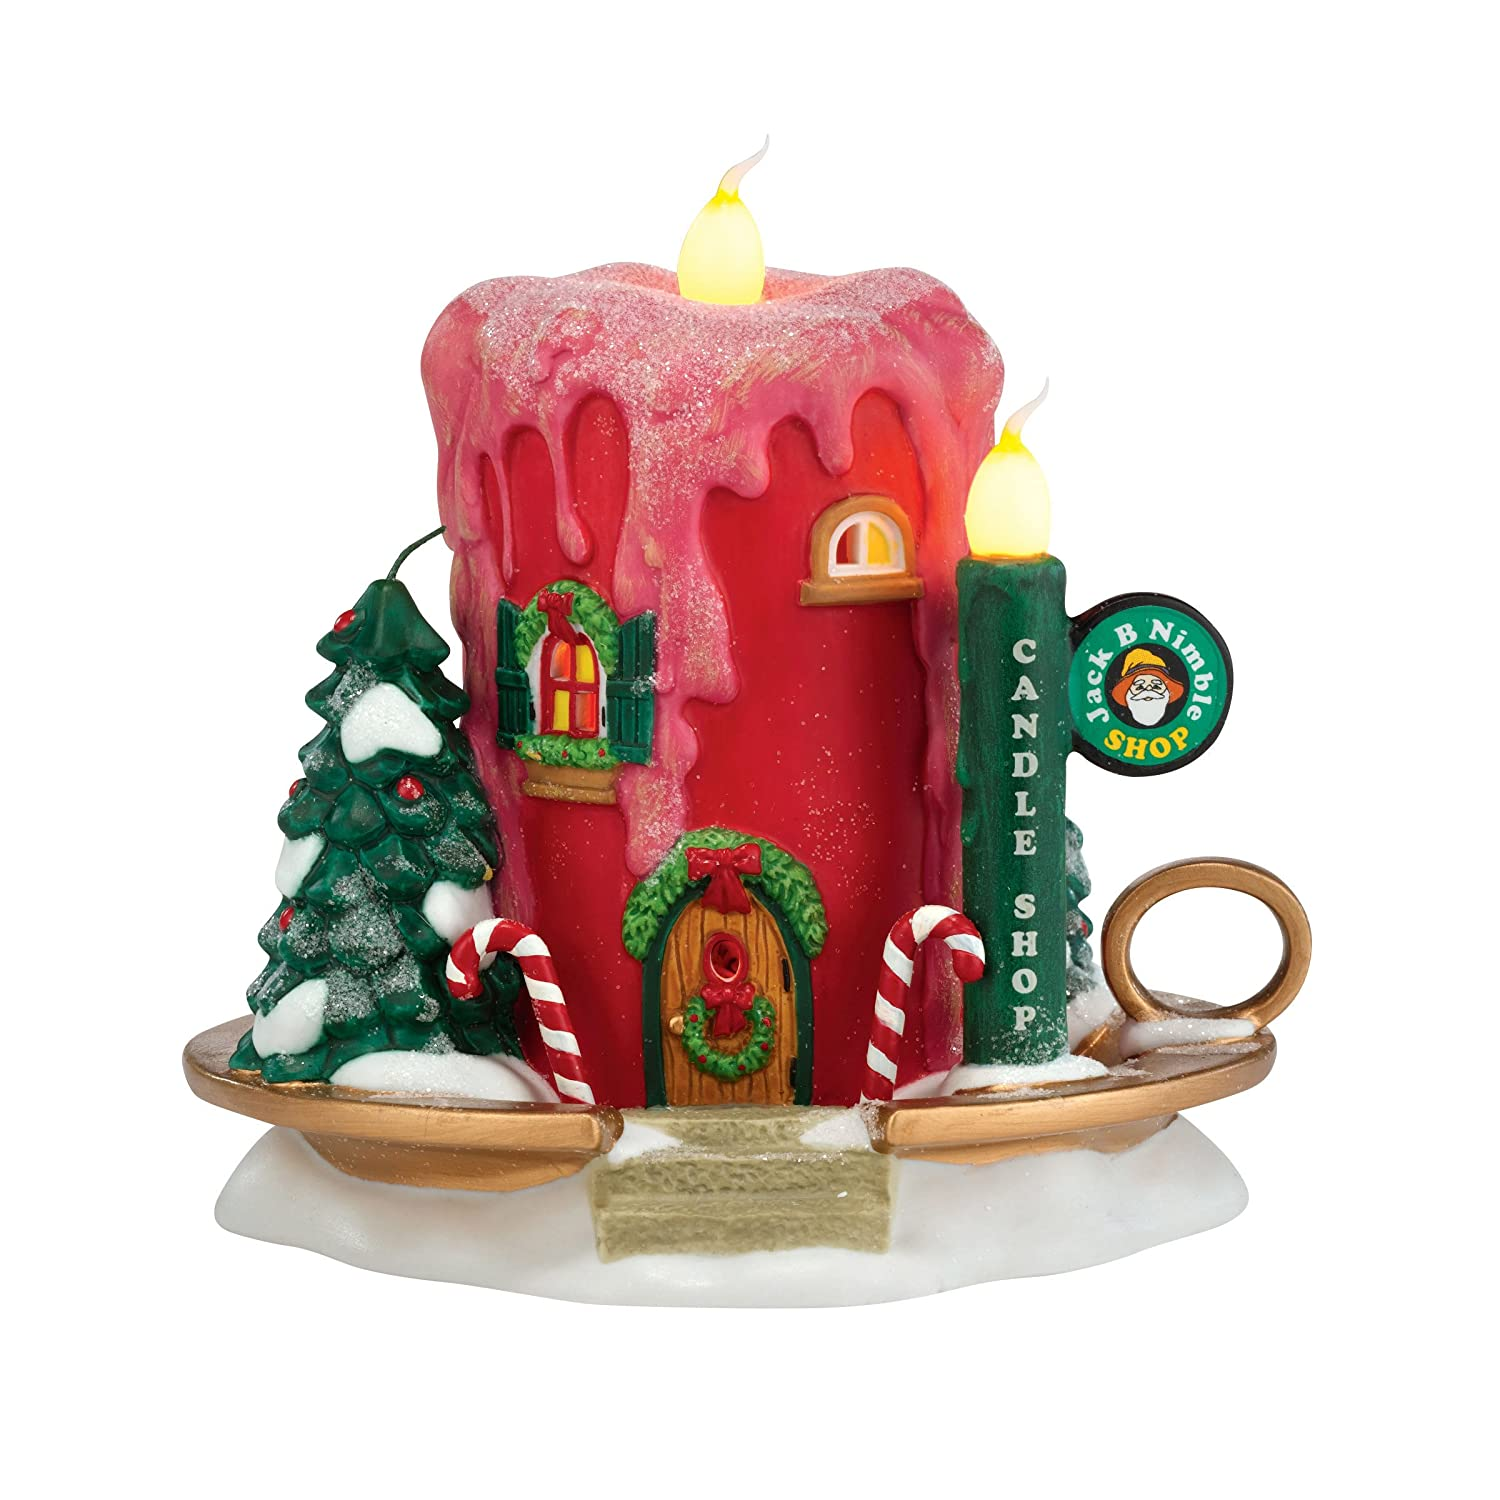 Department 56 North Pole Series Village Jack B. Nimble Candle Ornament Lit House, 5.31-Inch 4030719